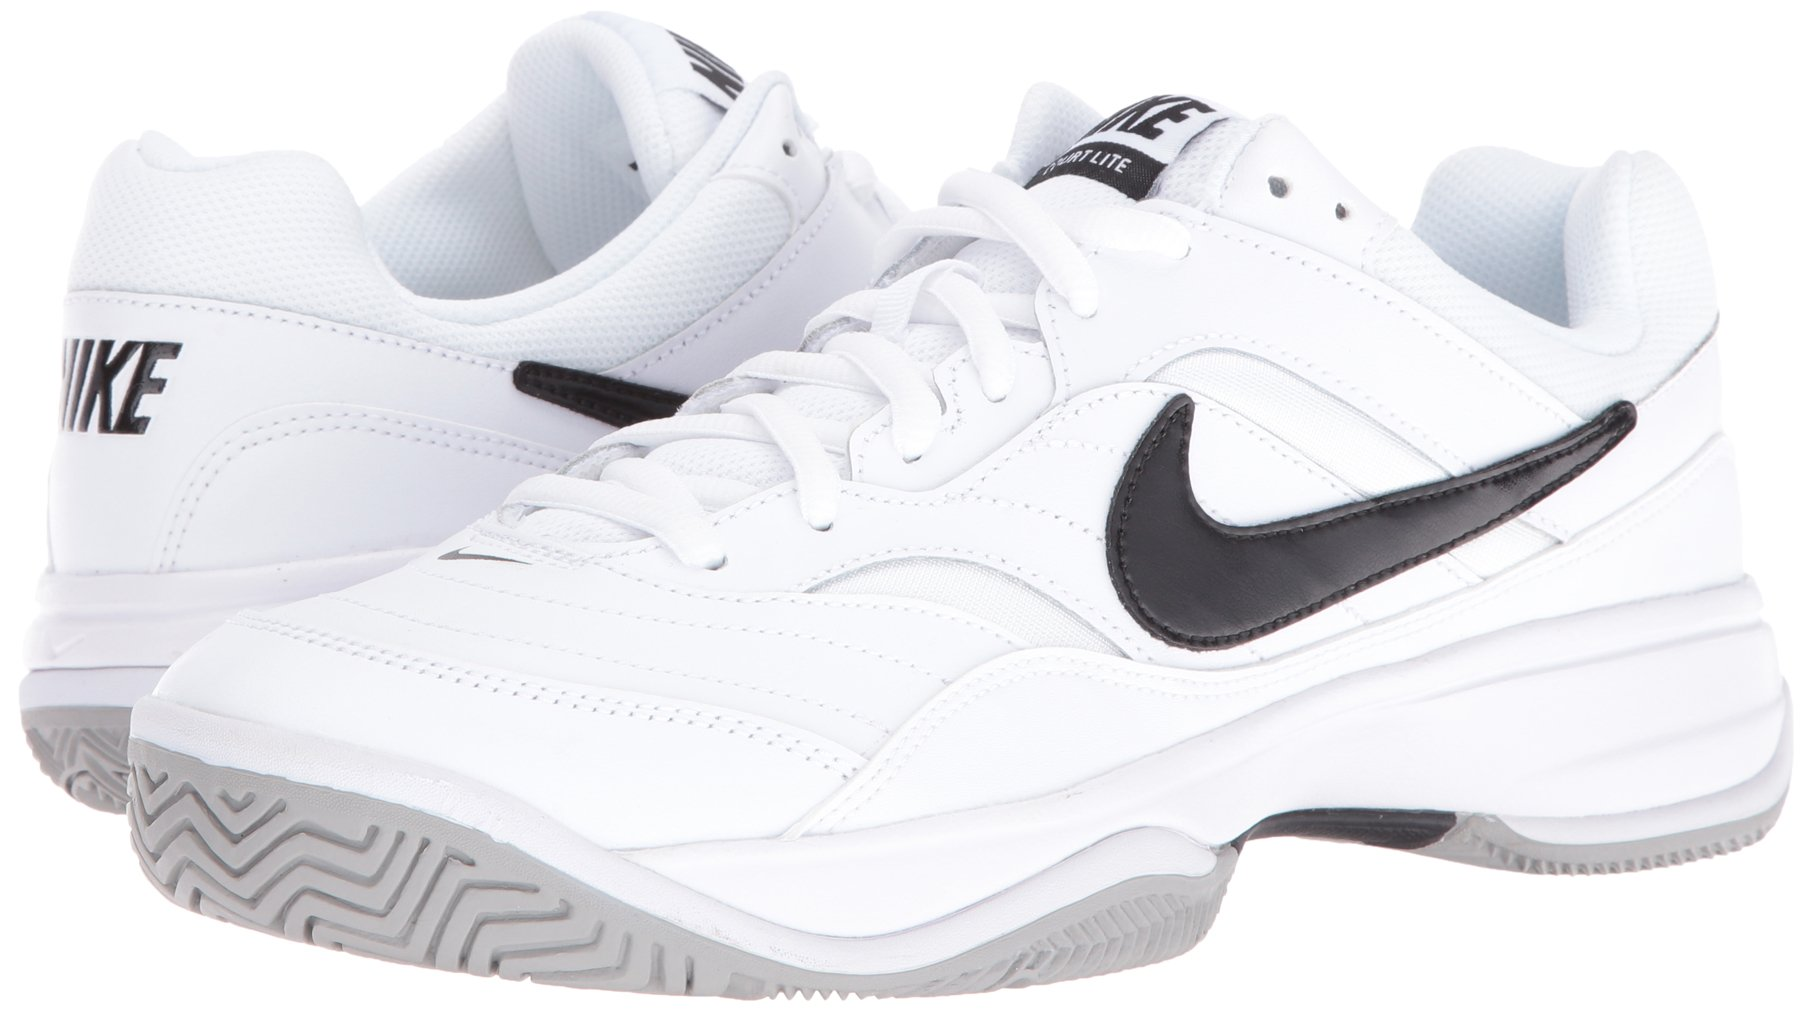 NIKE Men's Court Lite Tennis Shoe, White/Medium Grey/Black, 6.5 D(M) US by Nike (Image #6)